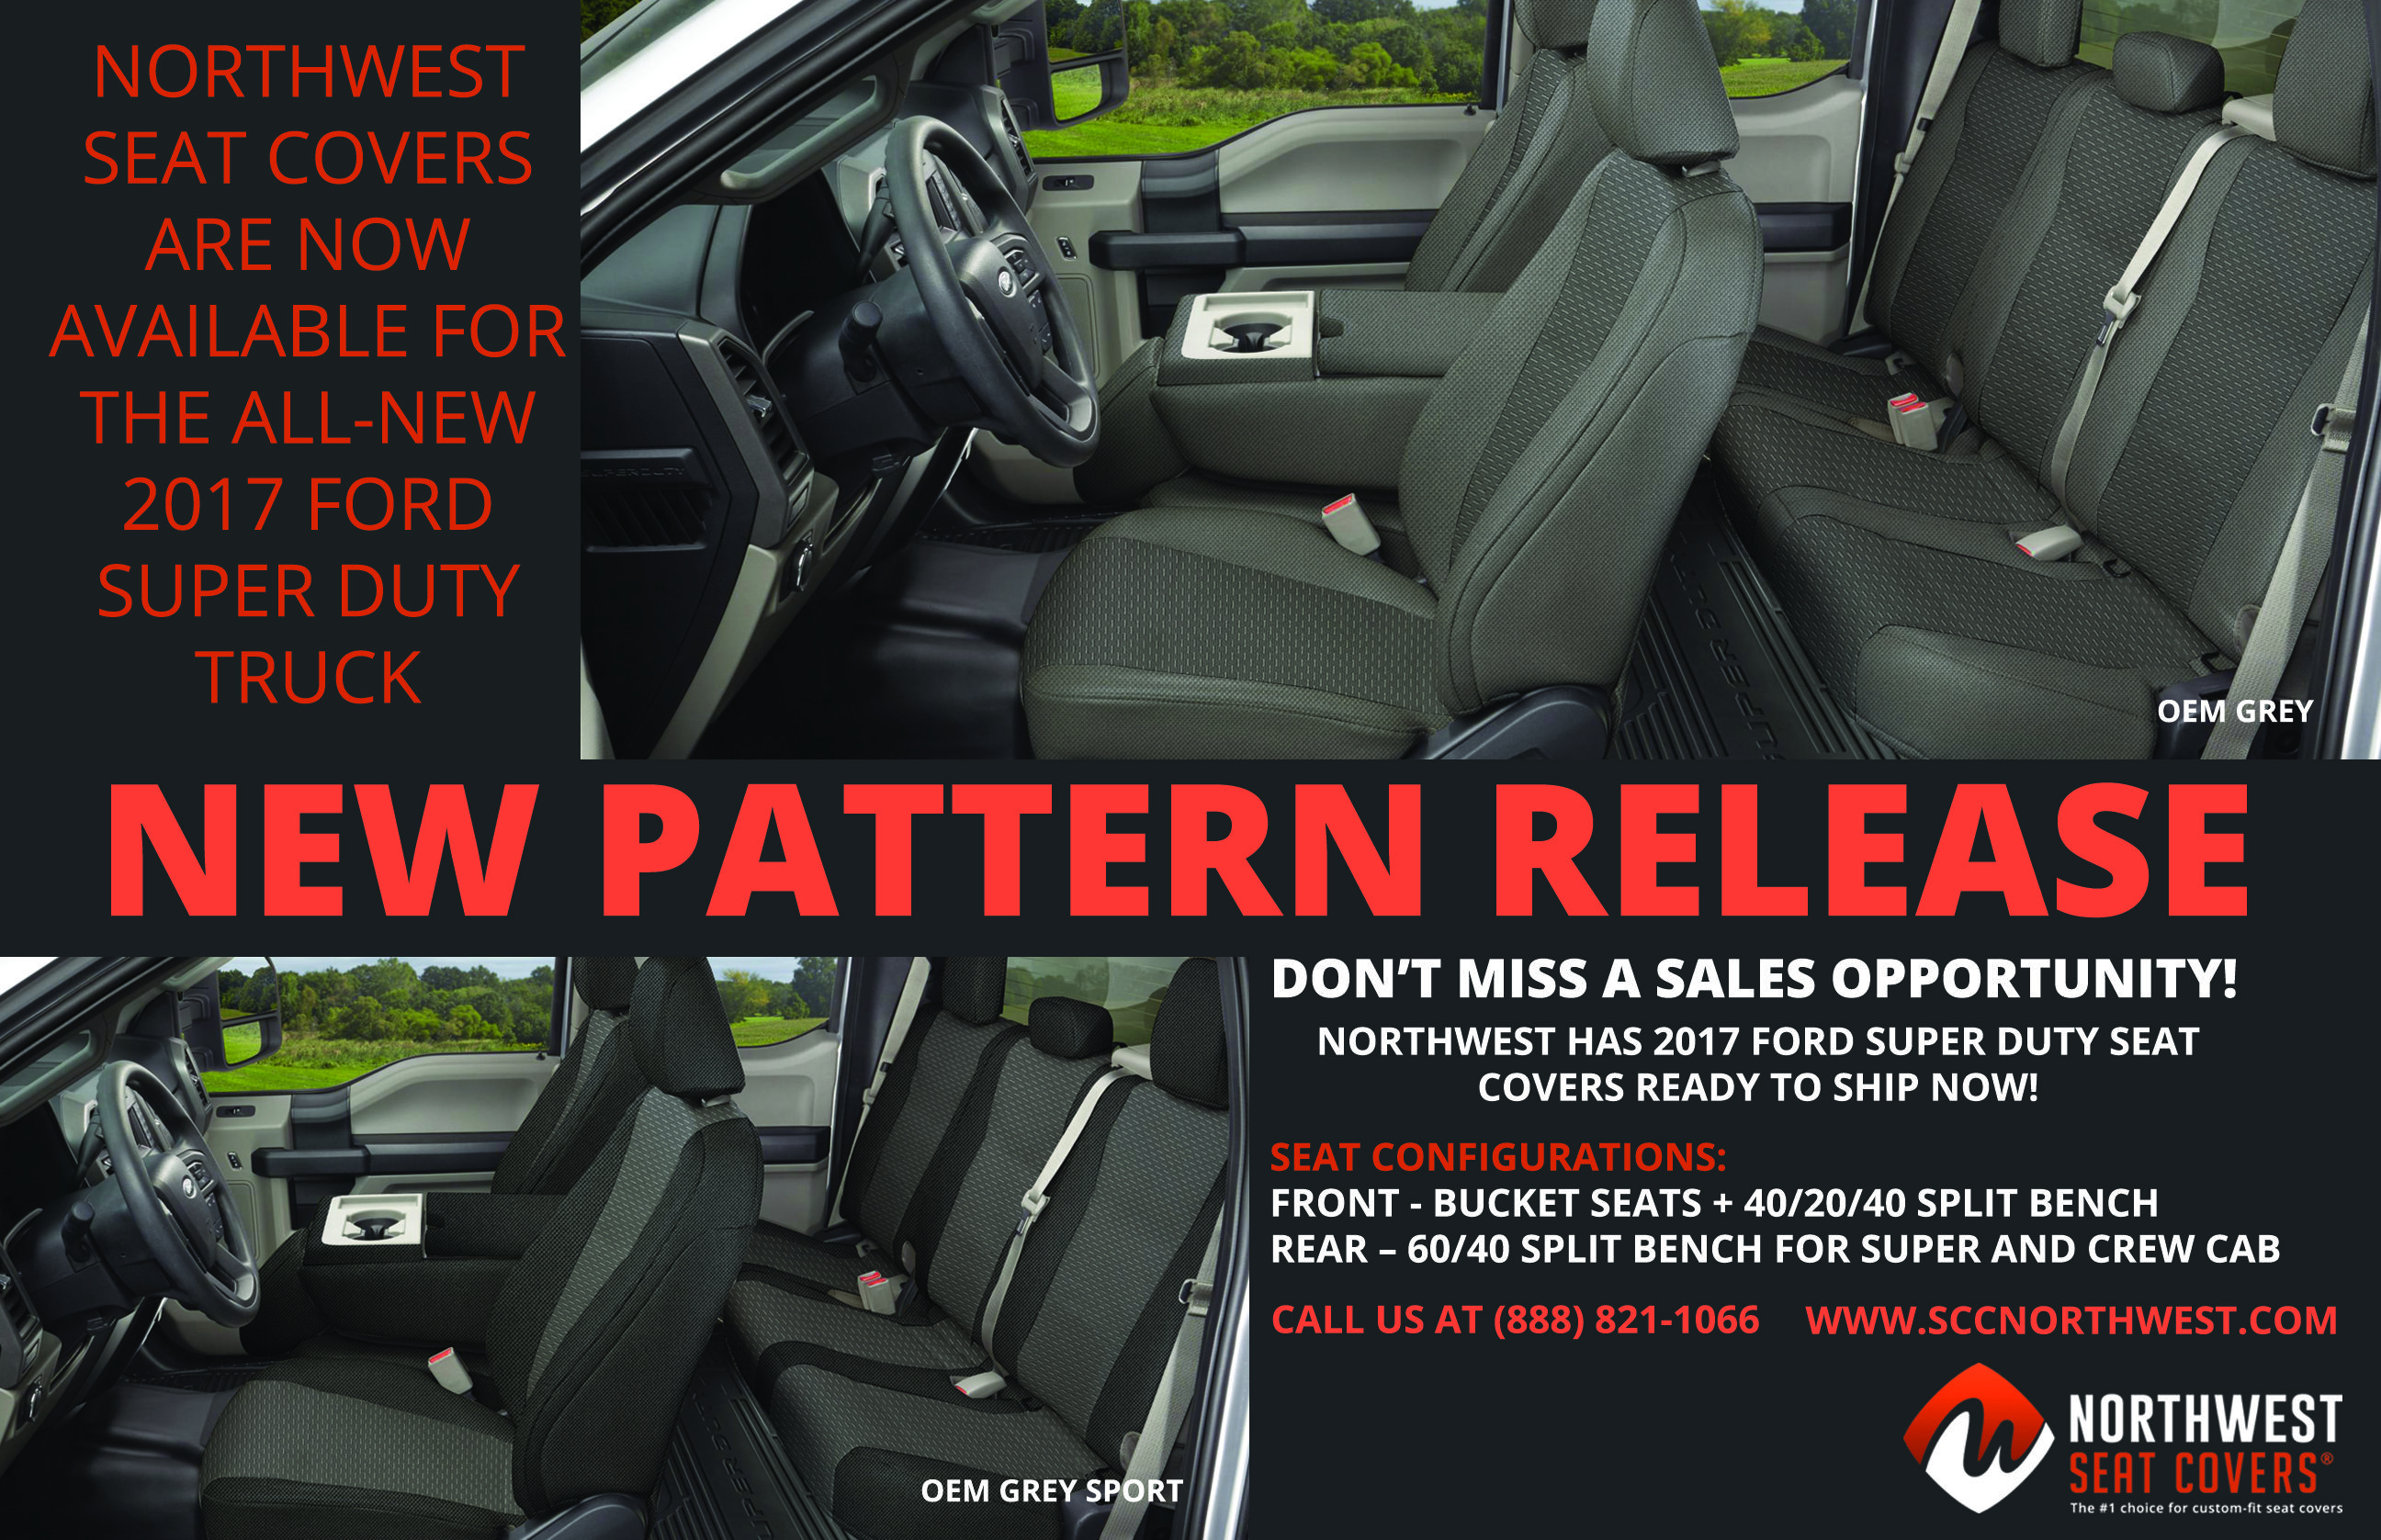 medium resolution of nw seat covers 2017 ford super duty